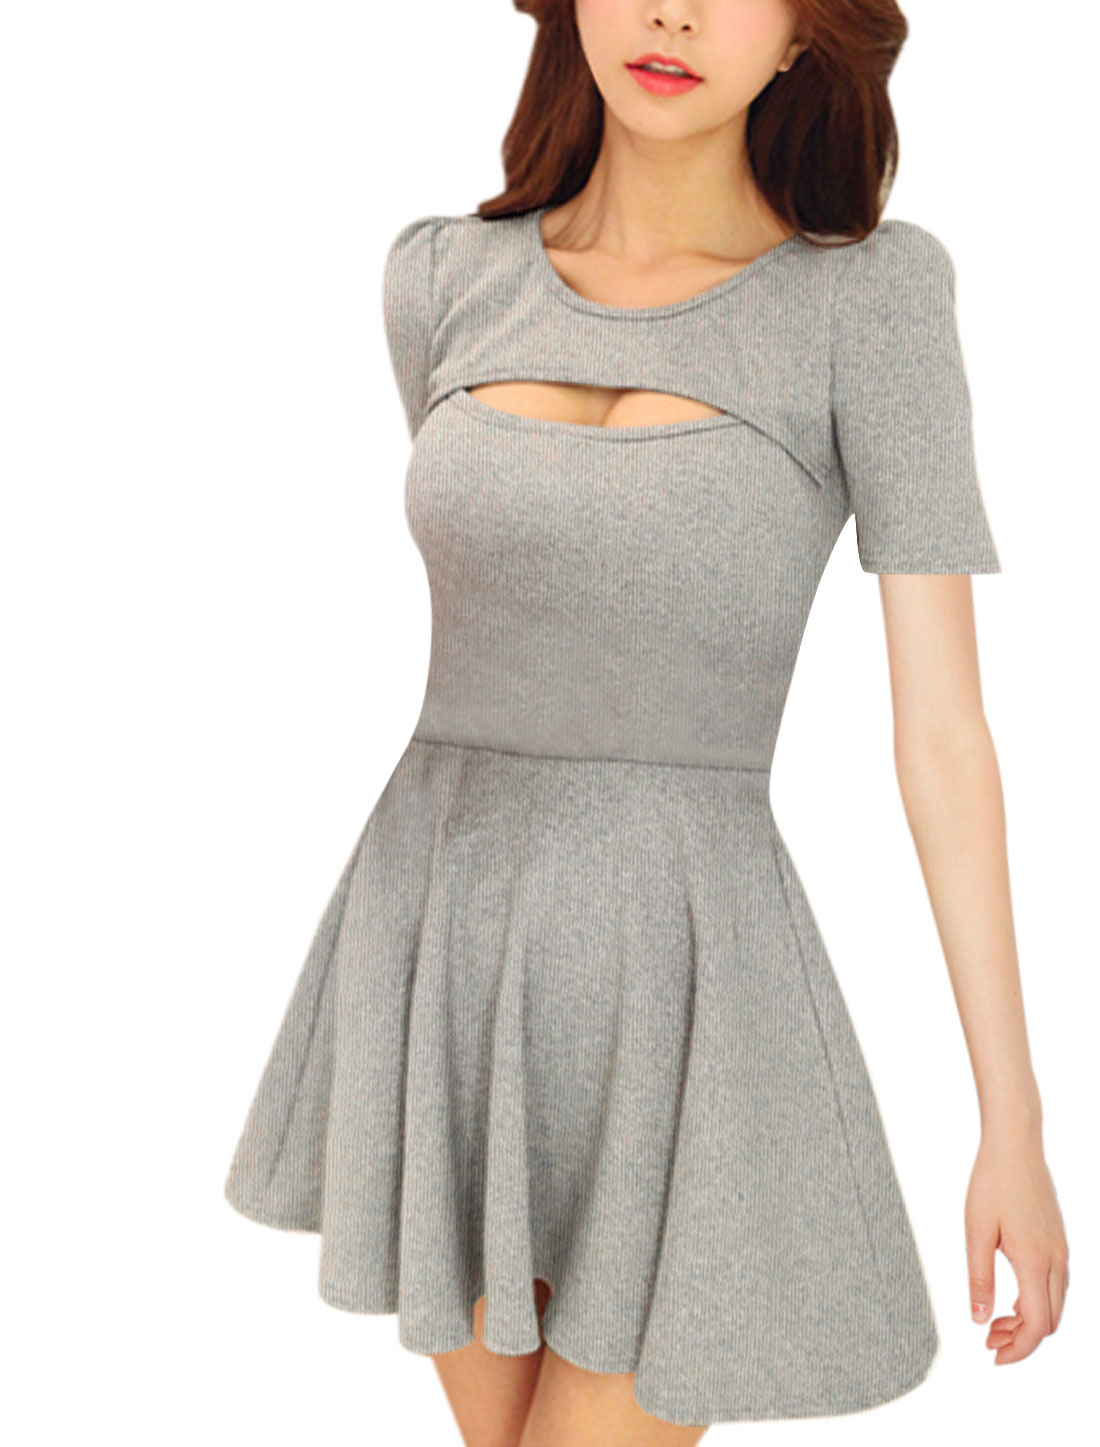 Ladies Stretchy Ruffled Design Cut Out Front Sexy Dress Light Gray S